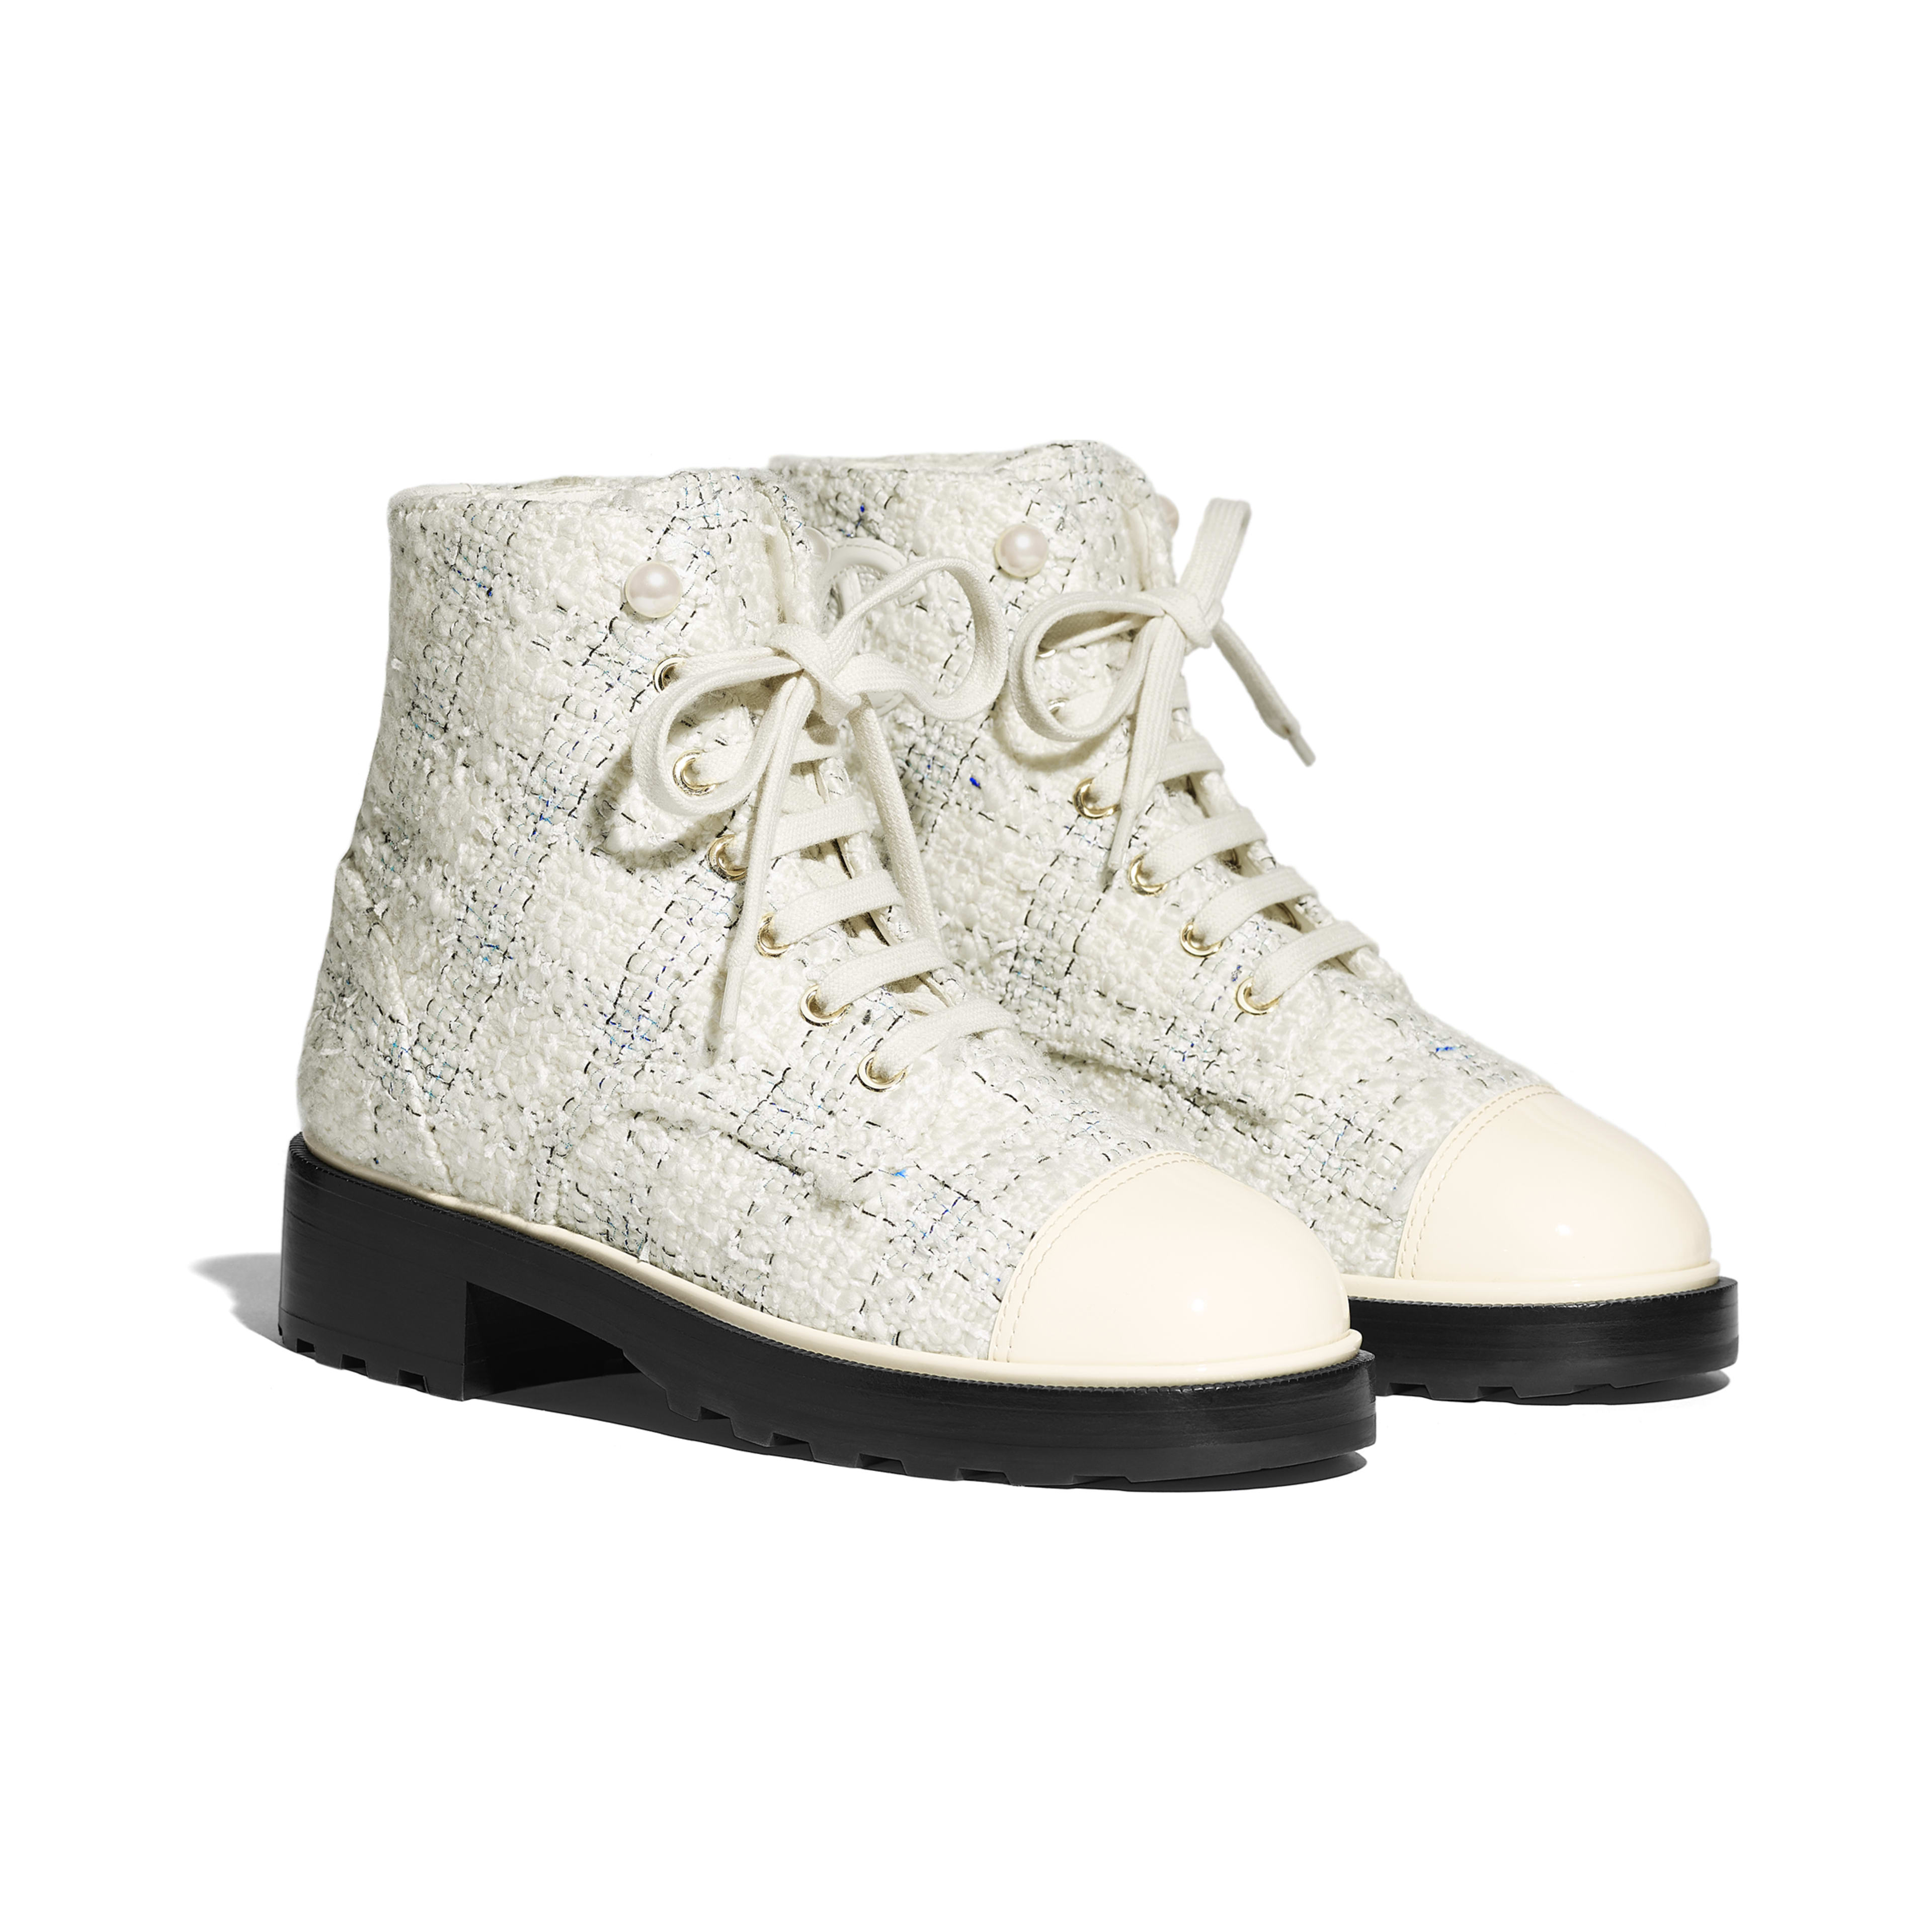 Ankle Boots - White & Black - Tweed & Calfskin - Alternative view - see full sized version